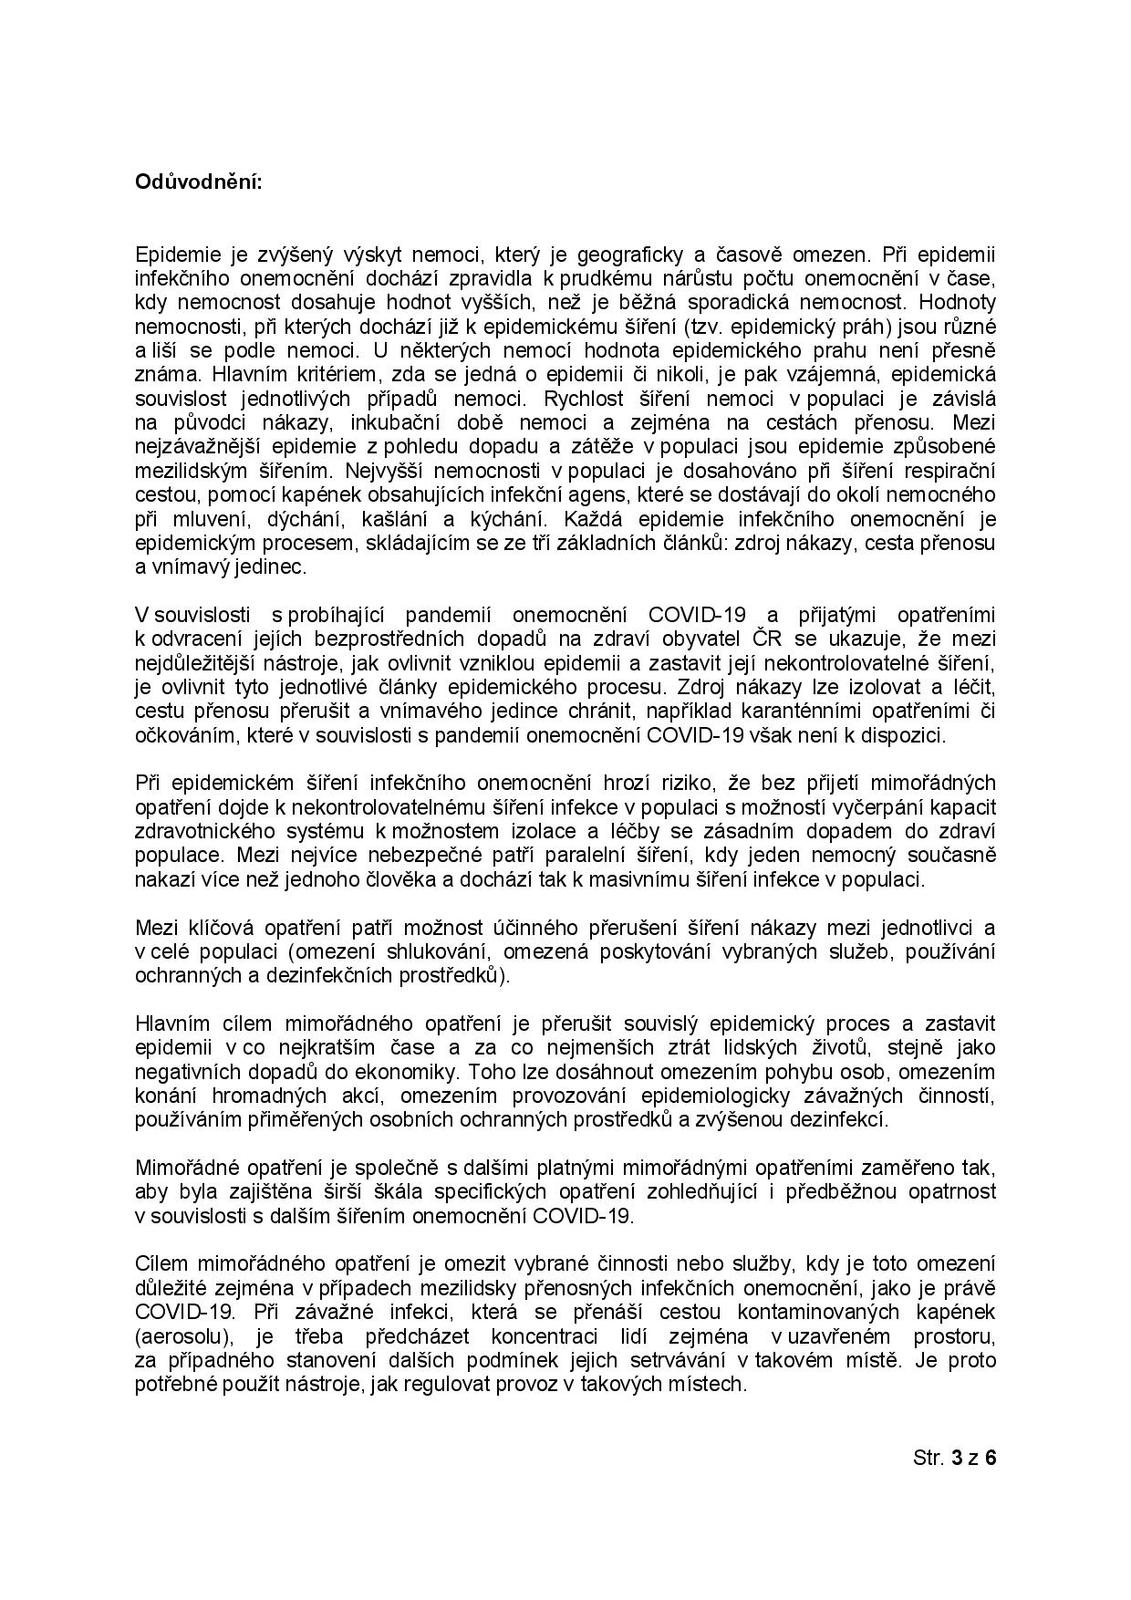 Document-page-003.jpg